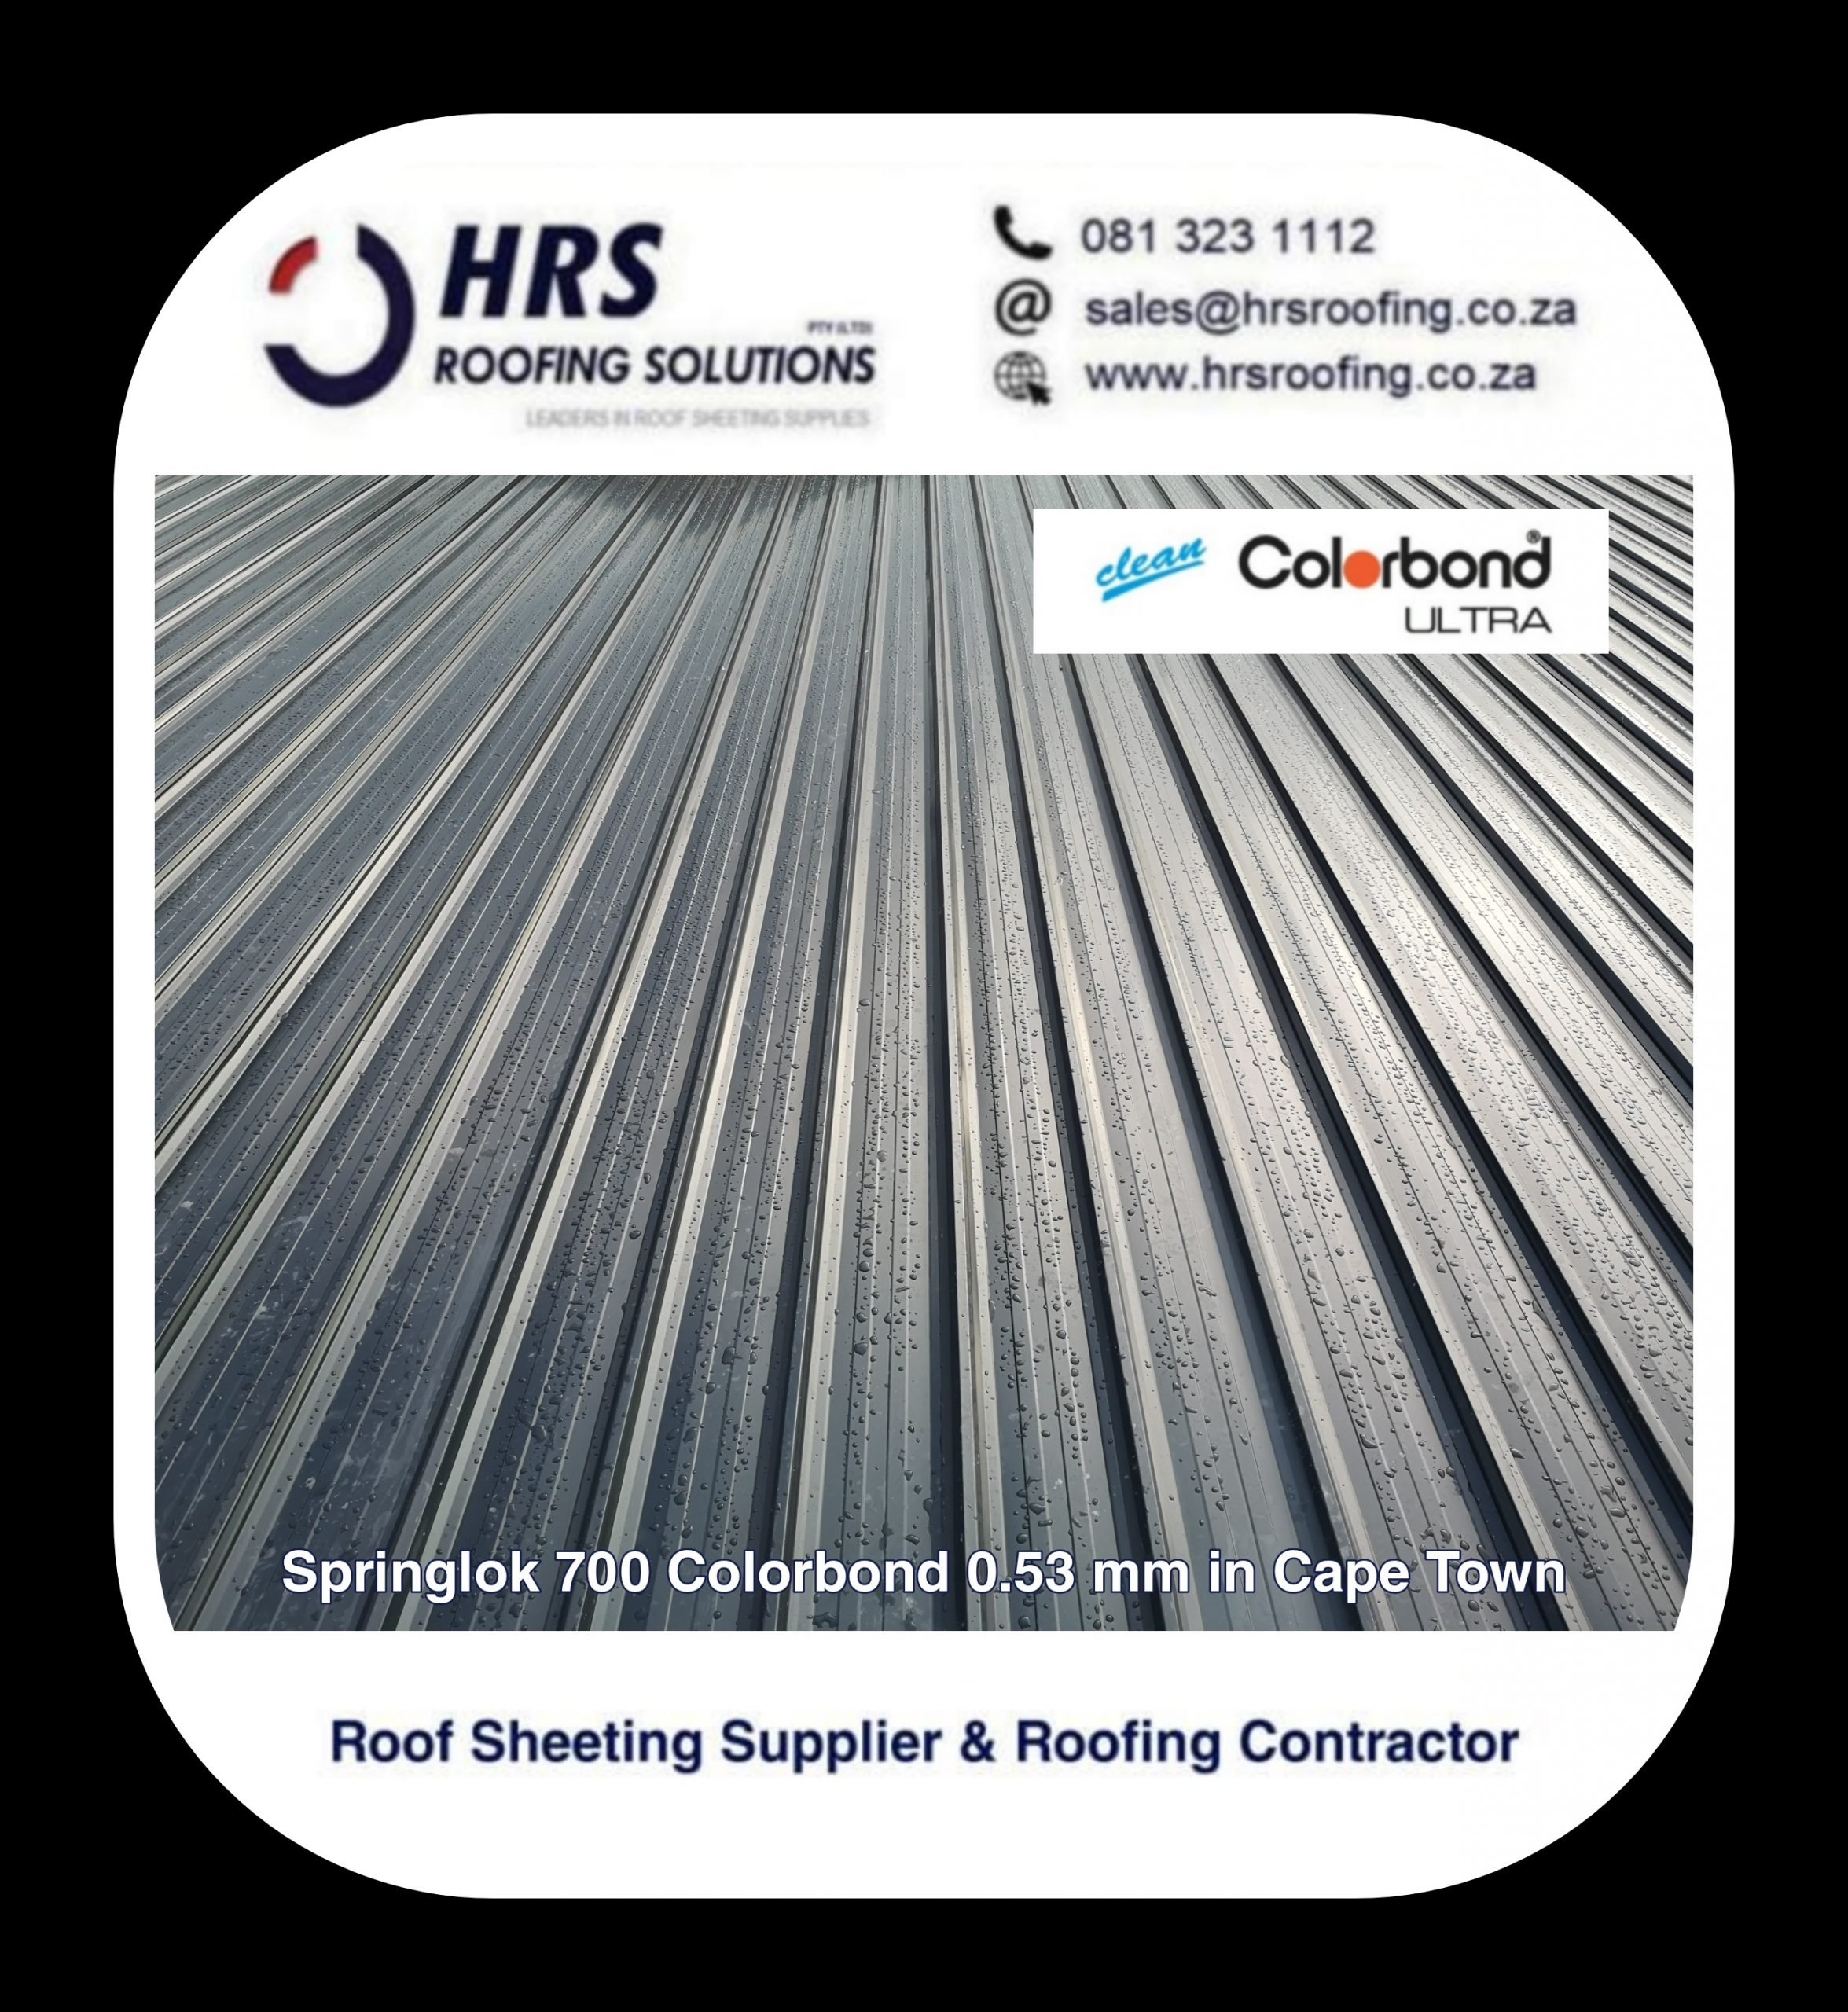 Springlok 700 clip lock colorbond roof sheeting cape town hrs roofing solutions ib scaled - Roofing Gallery